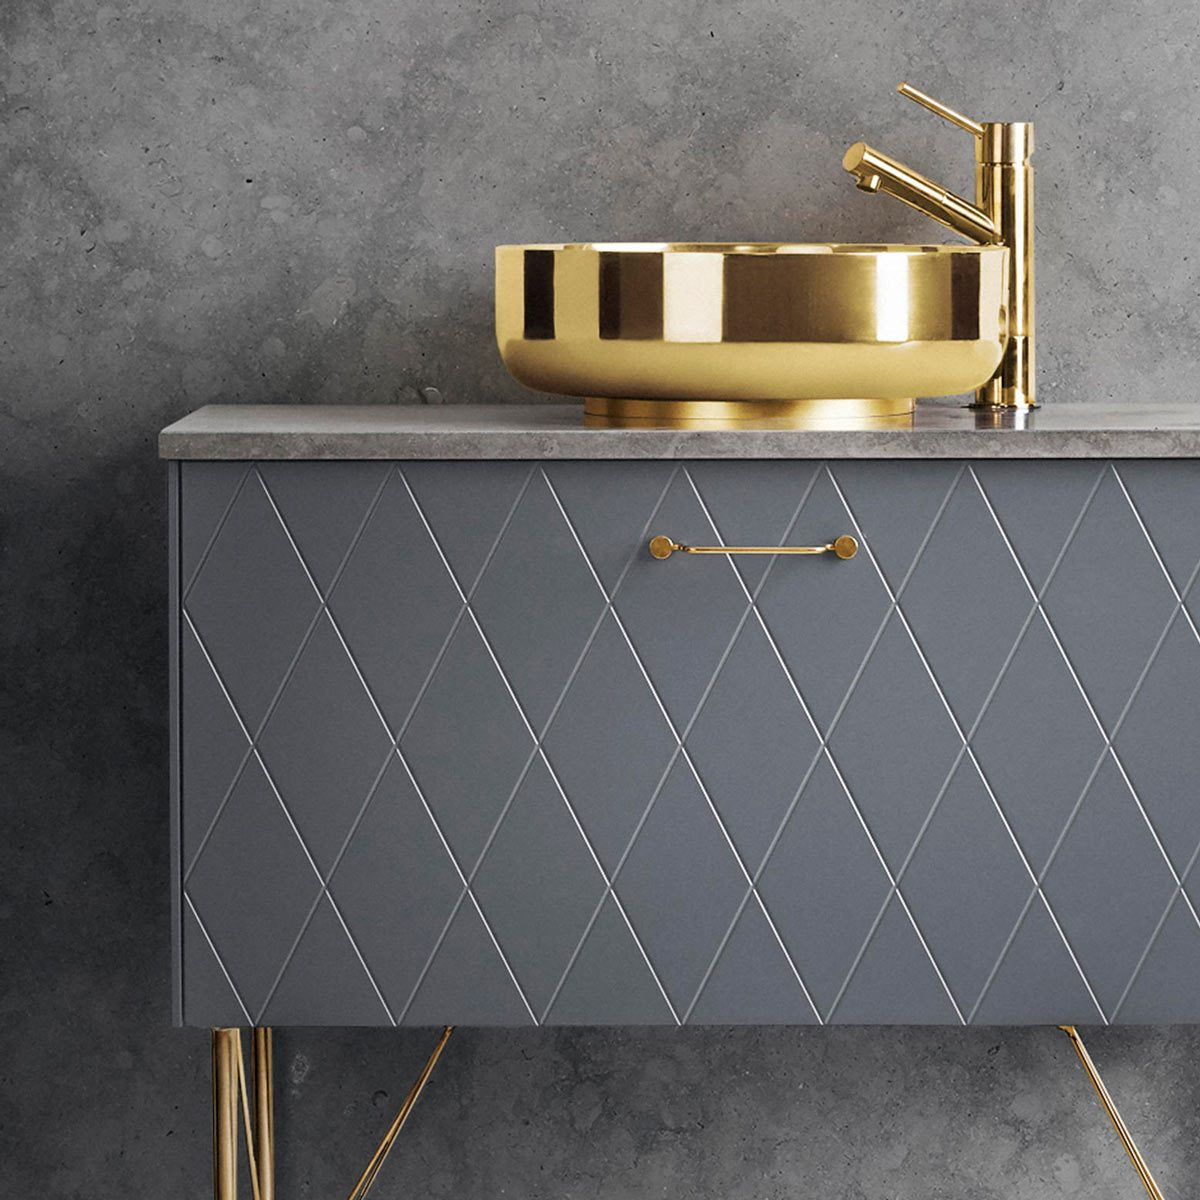 superfront-bathroom-vanity-unit-harlequin-cloudy-grey-brass-tap-legs-handles-pulls-limestone_2